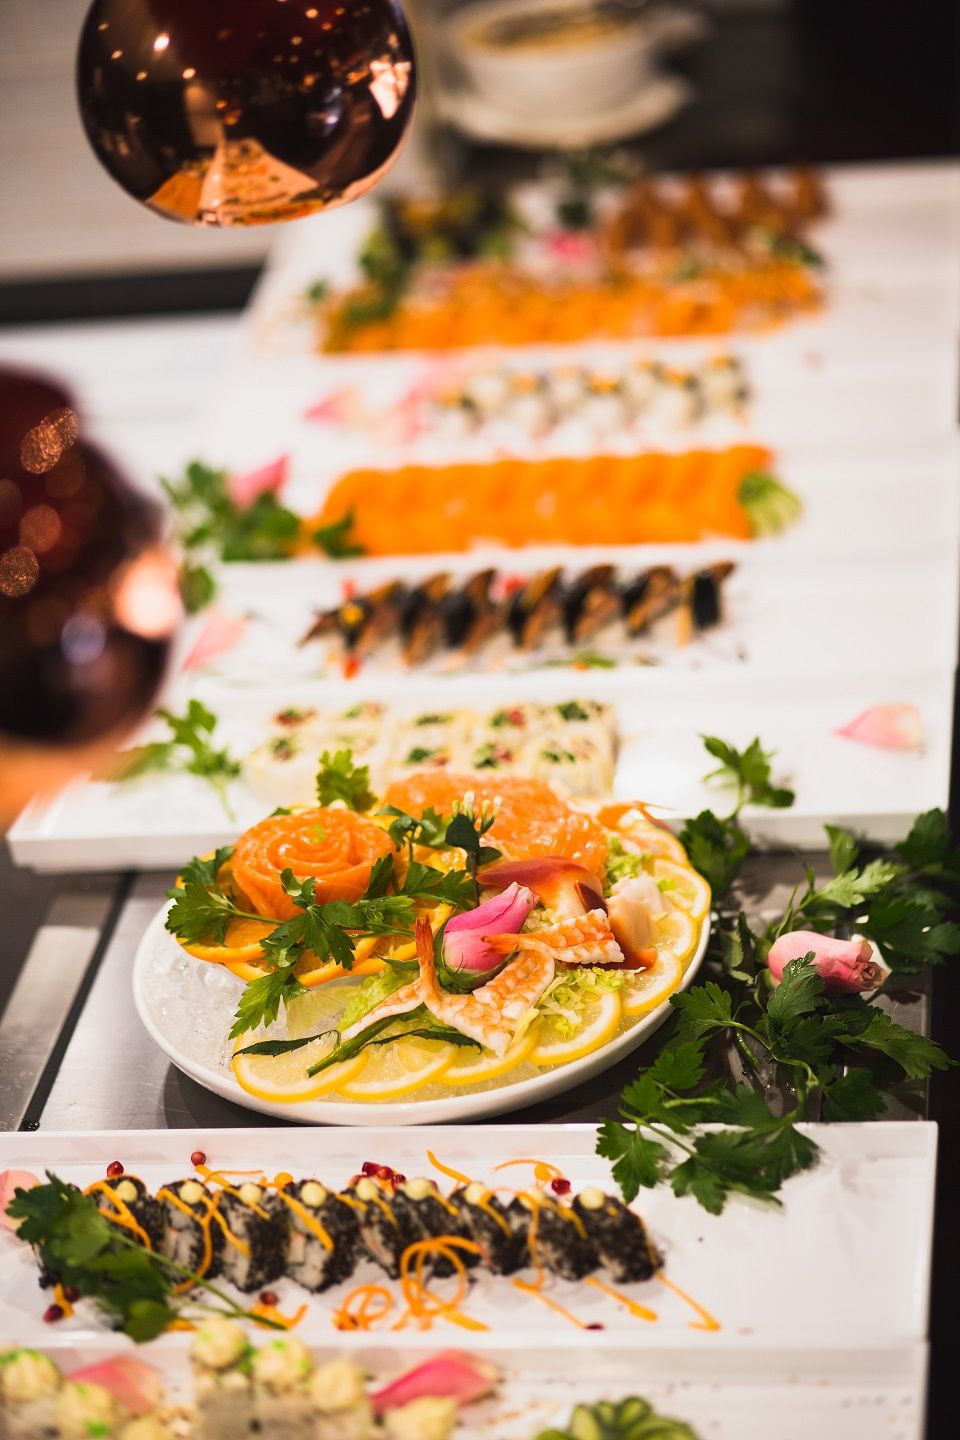 Ri Cora Buffet In Sodermalm With Asian Food Meat Grilled